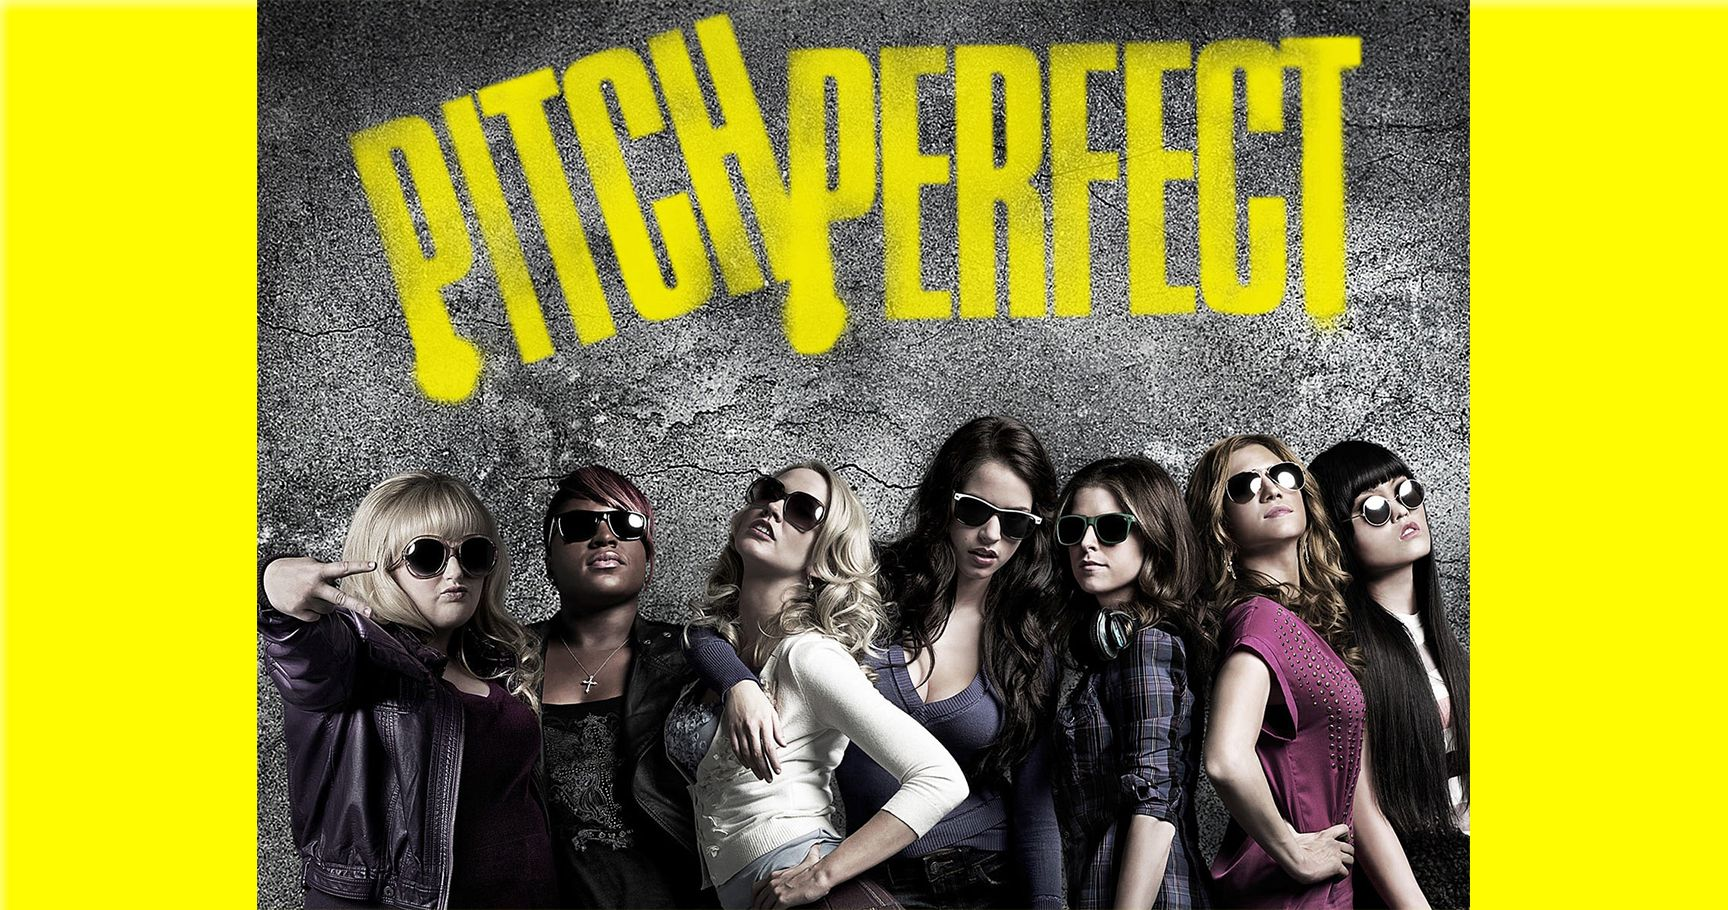 Only 5% Of Fans Can Get 20/25 On This 'Pitch Perfect' Quiz